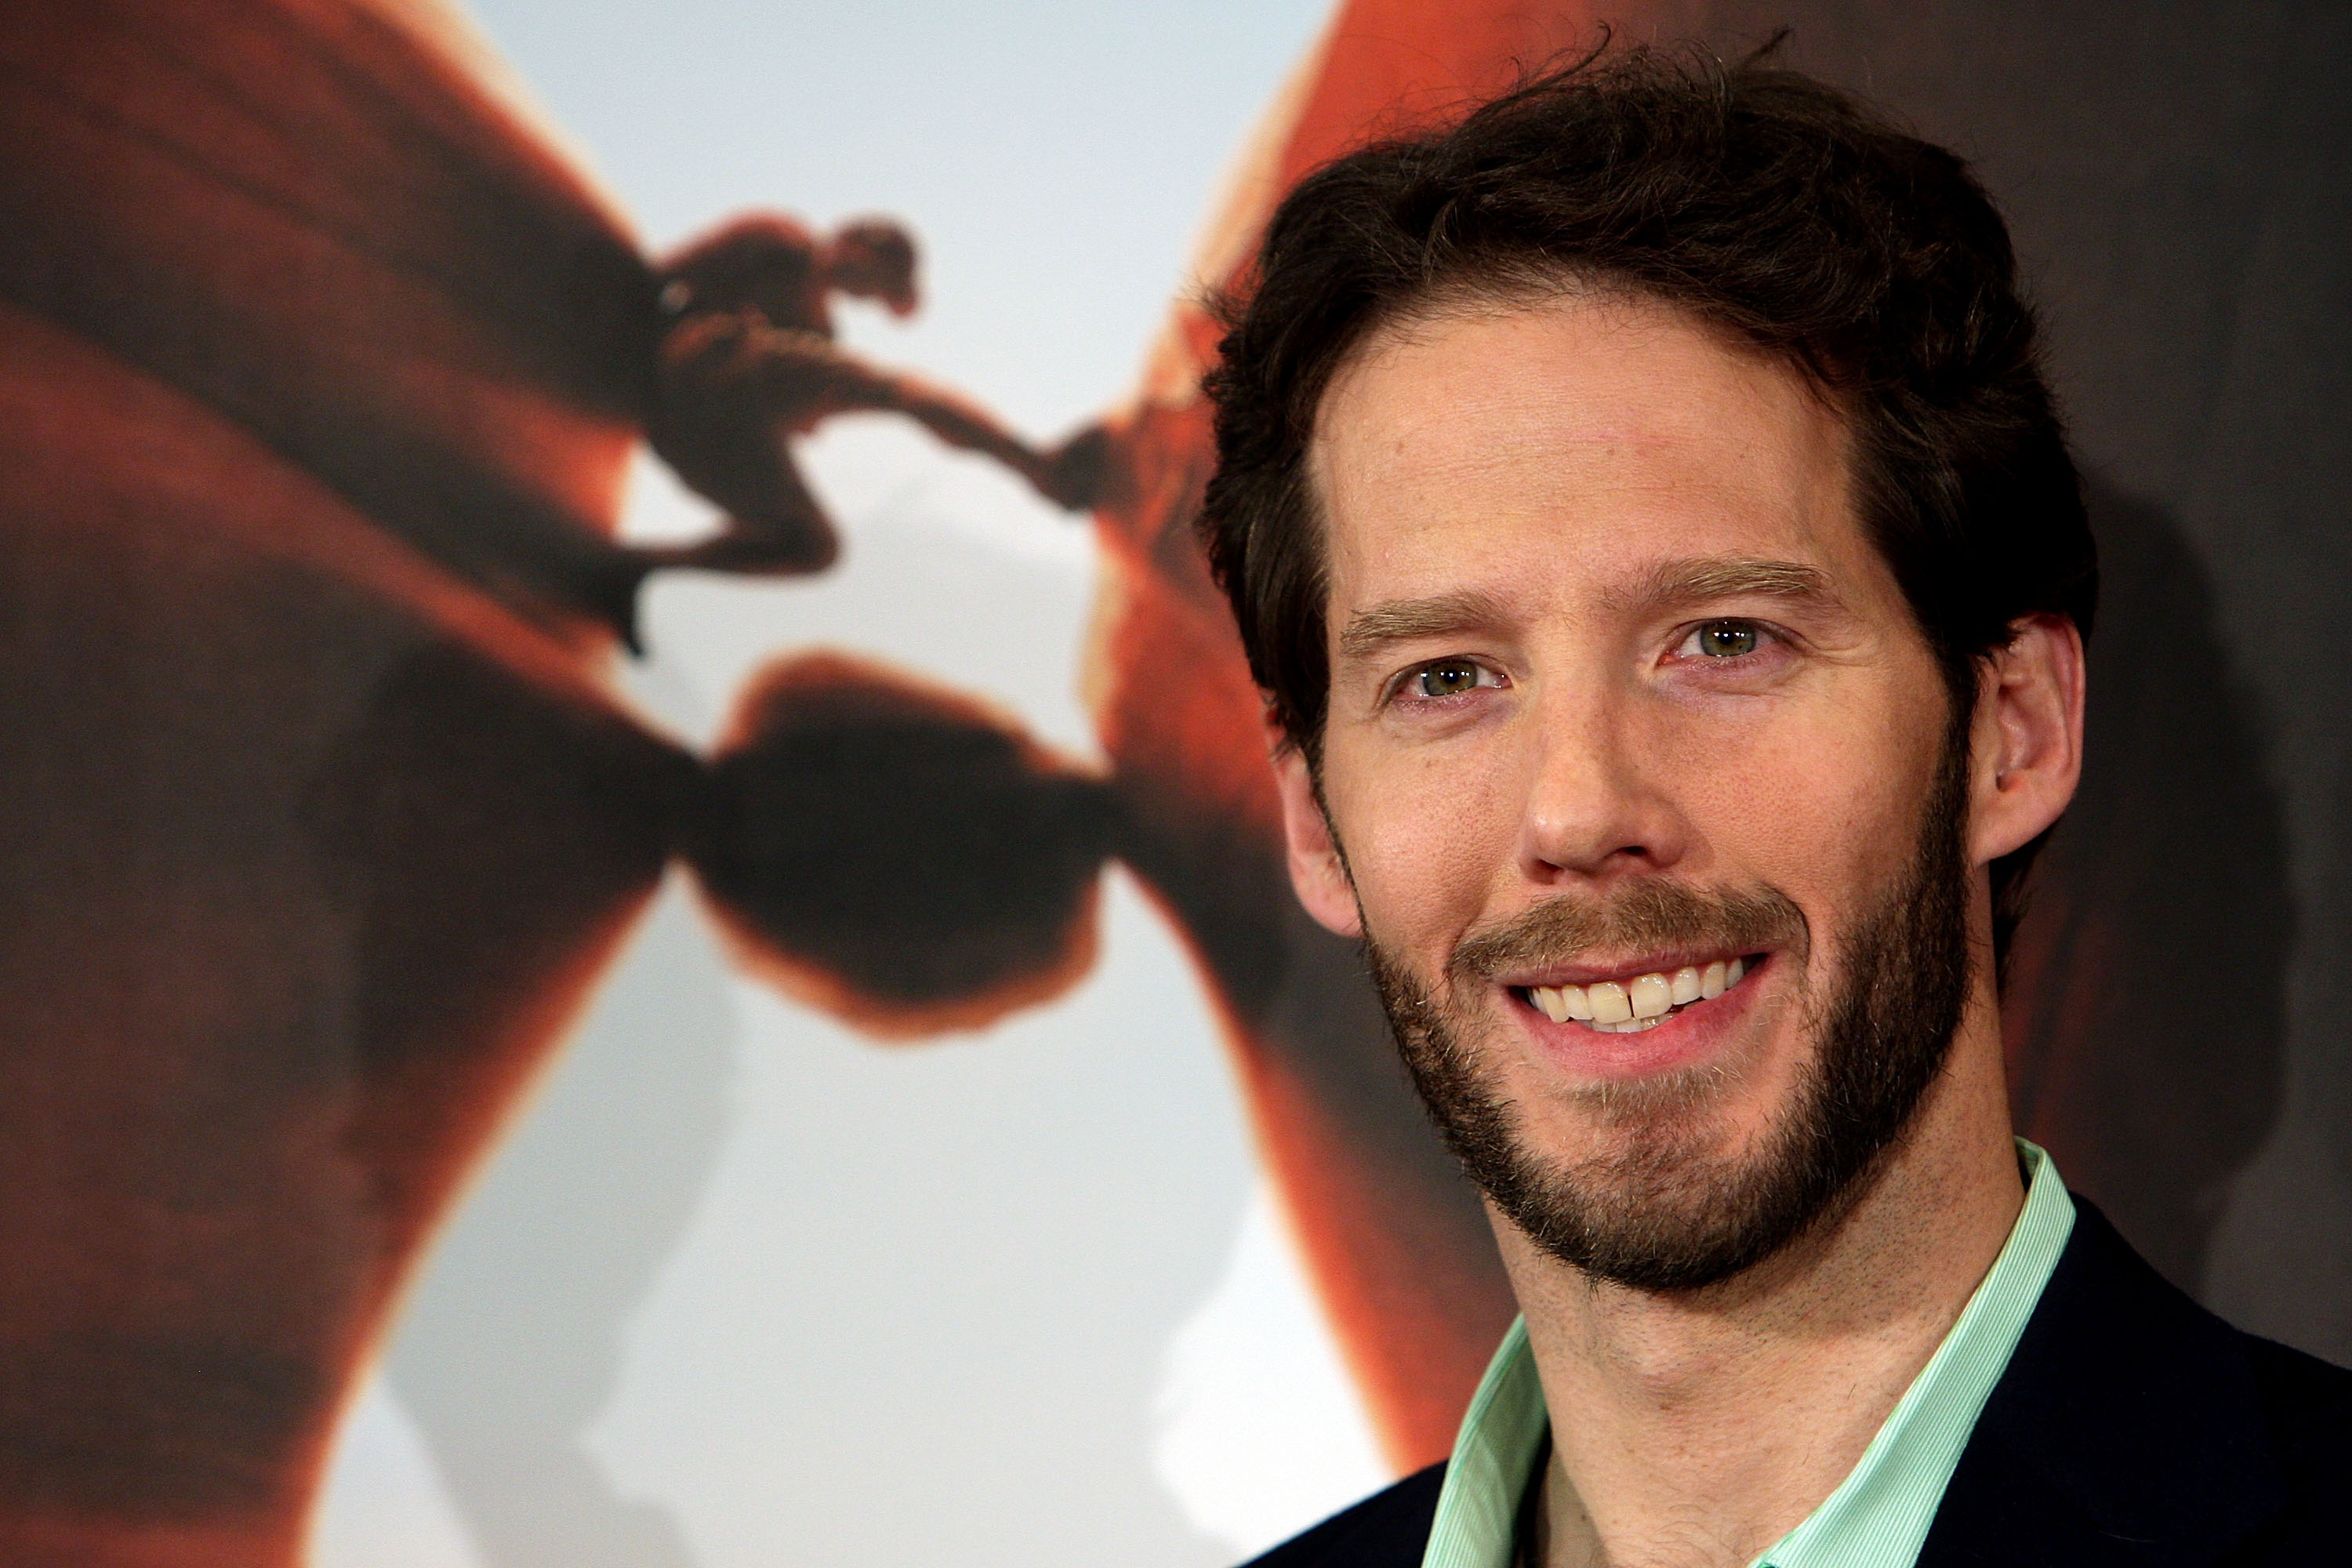 Charges Against Aron Ralston Dropped: '127 Hours' Subject Aron Ralston Charged With Domestic